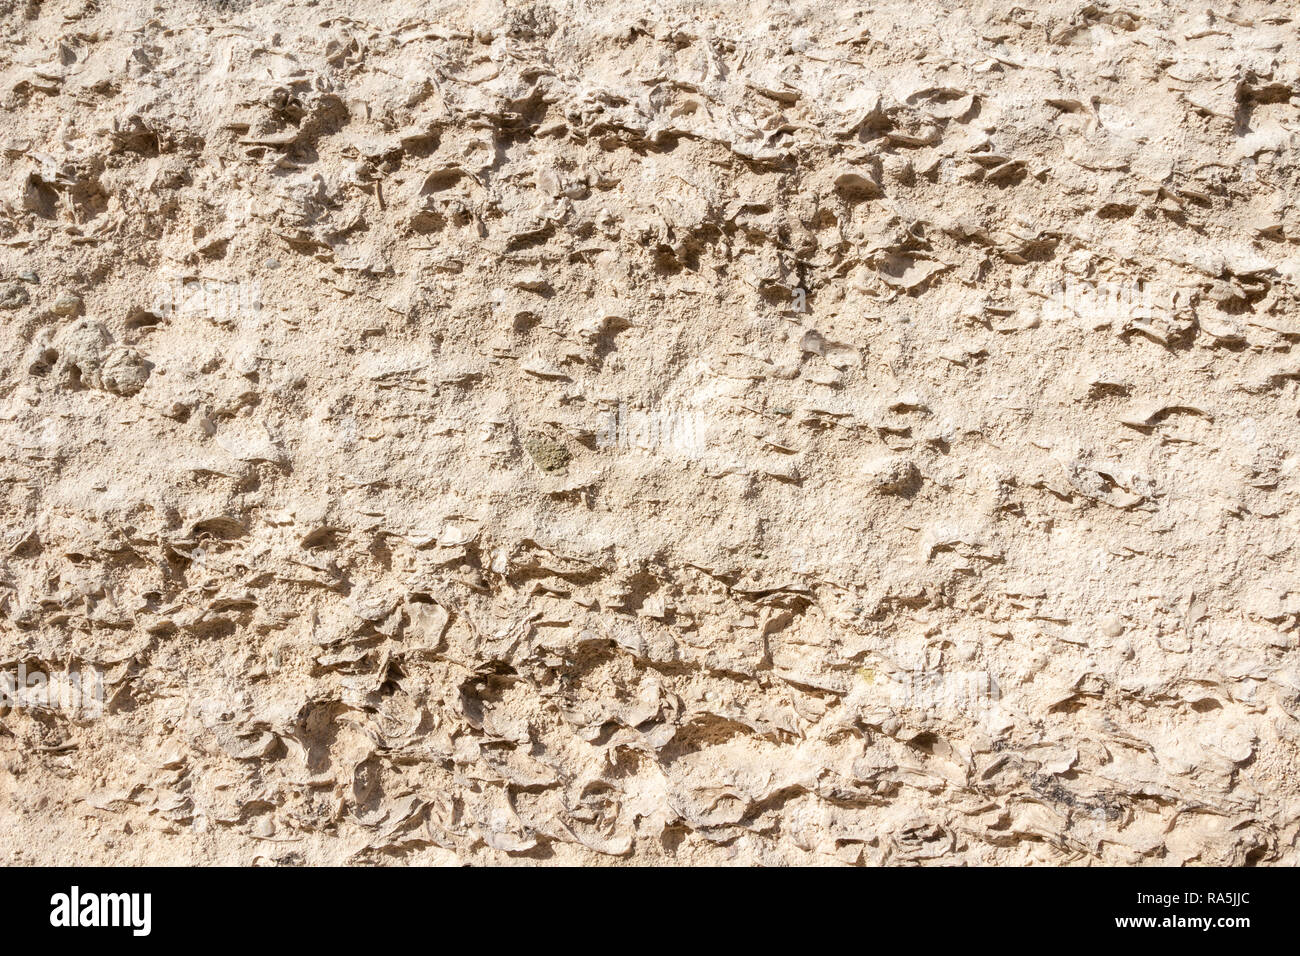 Natural limestone surface in the ground. The ancient shells can clearly be seen. The stone formed 13–16 million years ago, in the Miocene era. - Stock Image